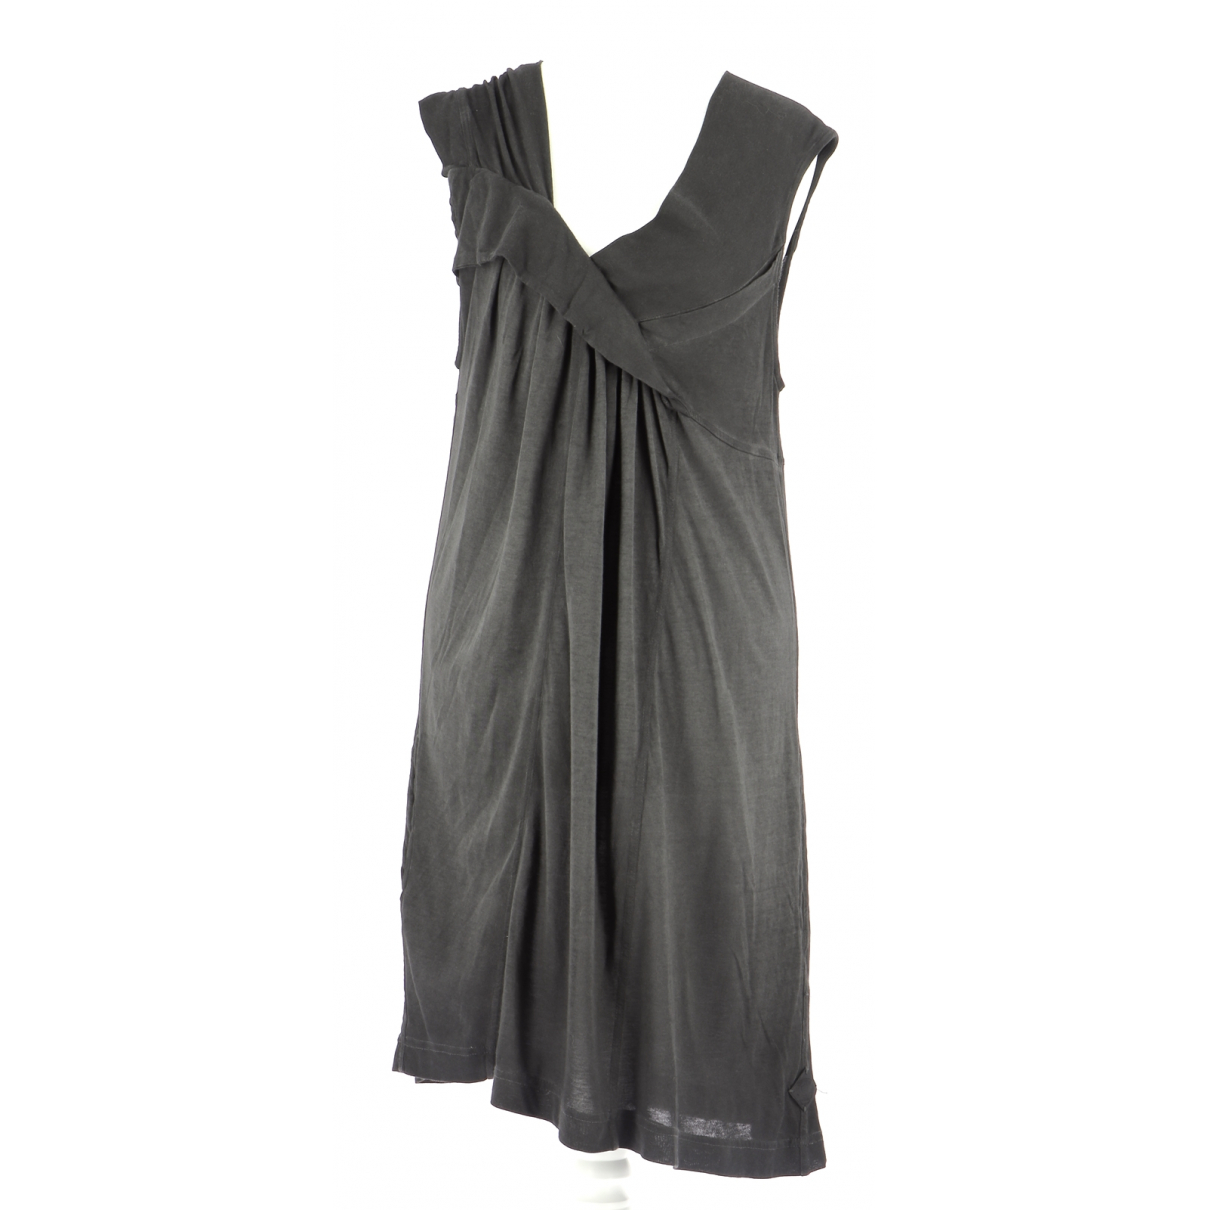 Diesel \N Black Cotton dress for Women 36 FR